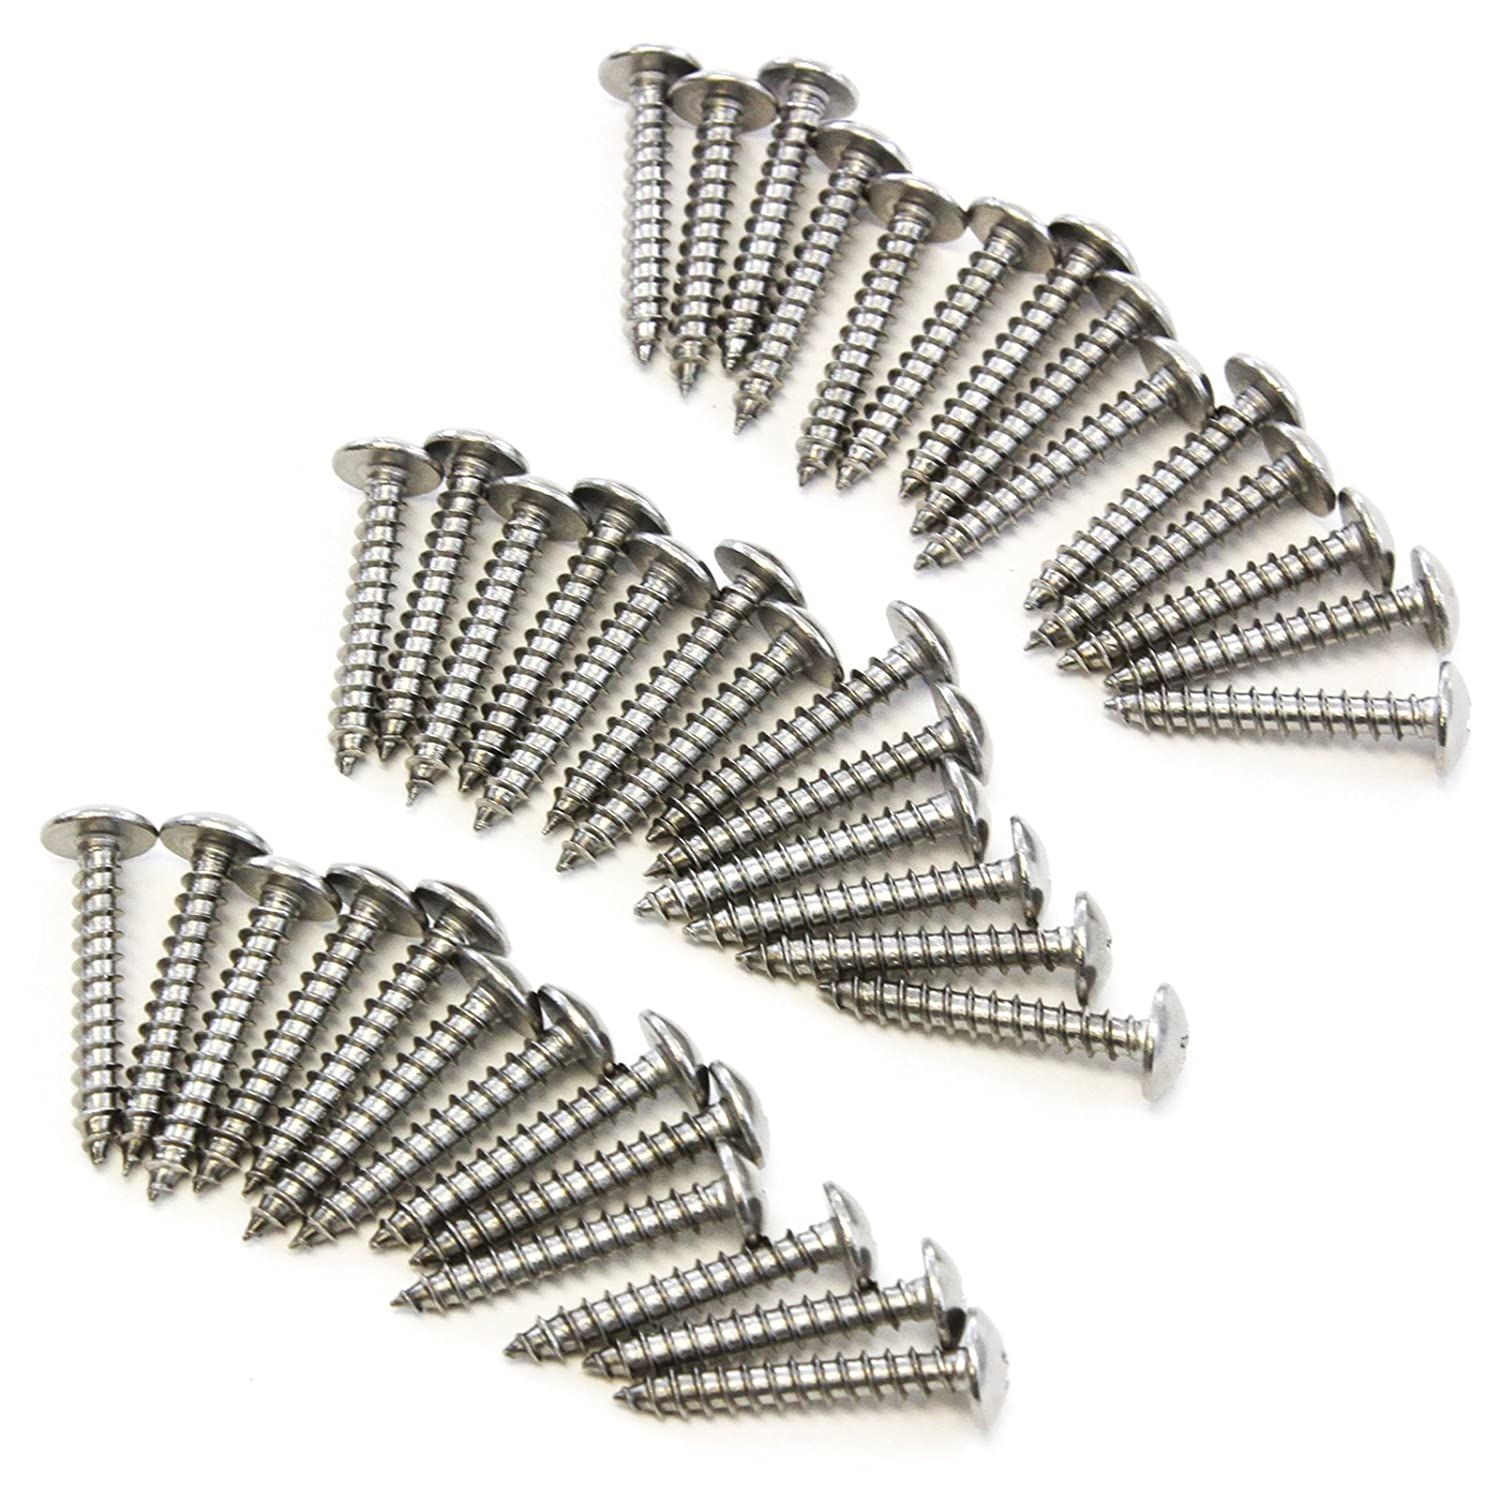 Red Hound Auto 20 Marine Pan Head Screw Set Dock Bumper Installation 10 x 2-1//2 Inches SS Stainless